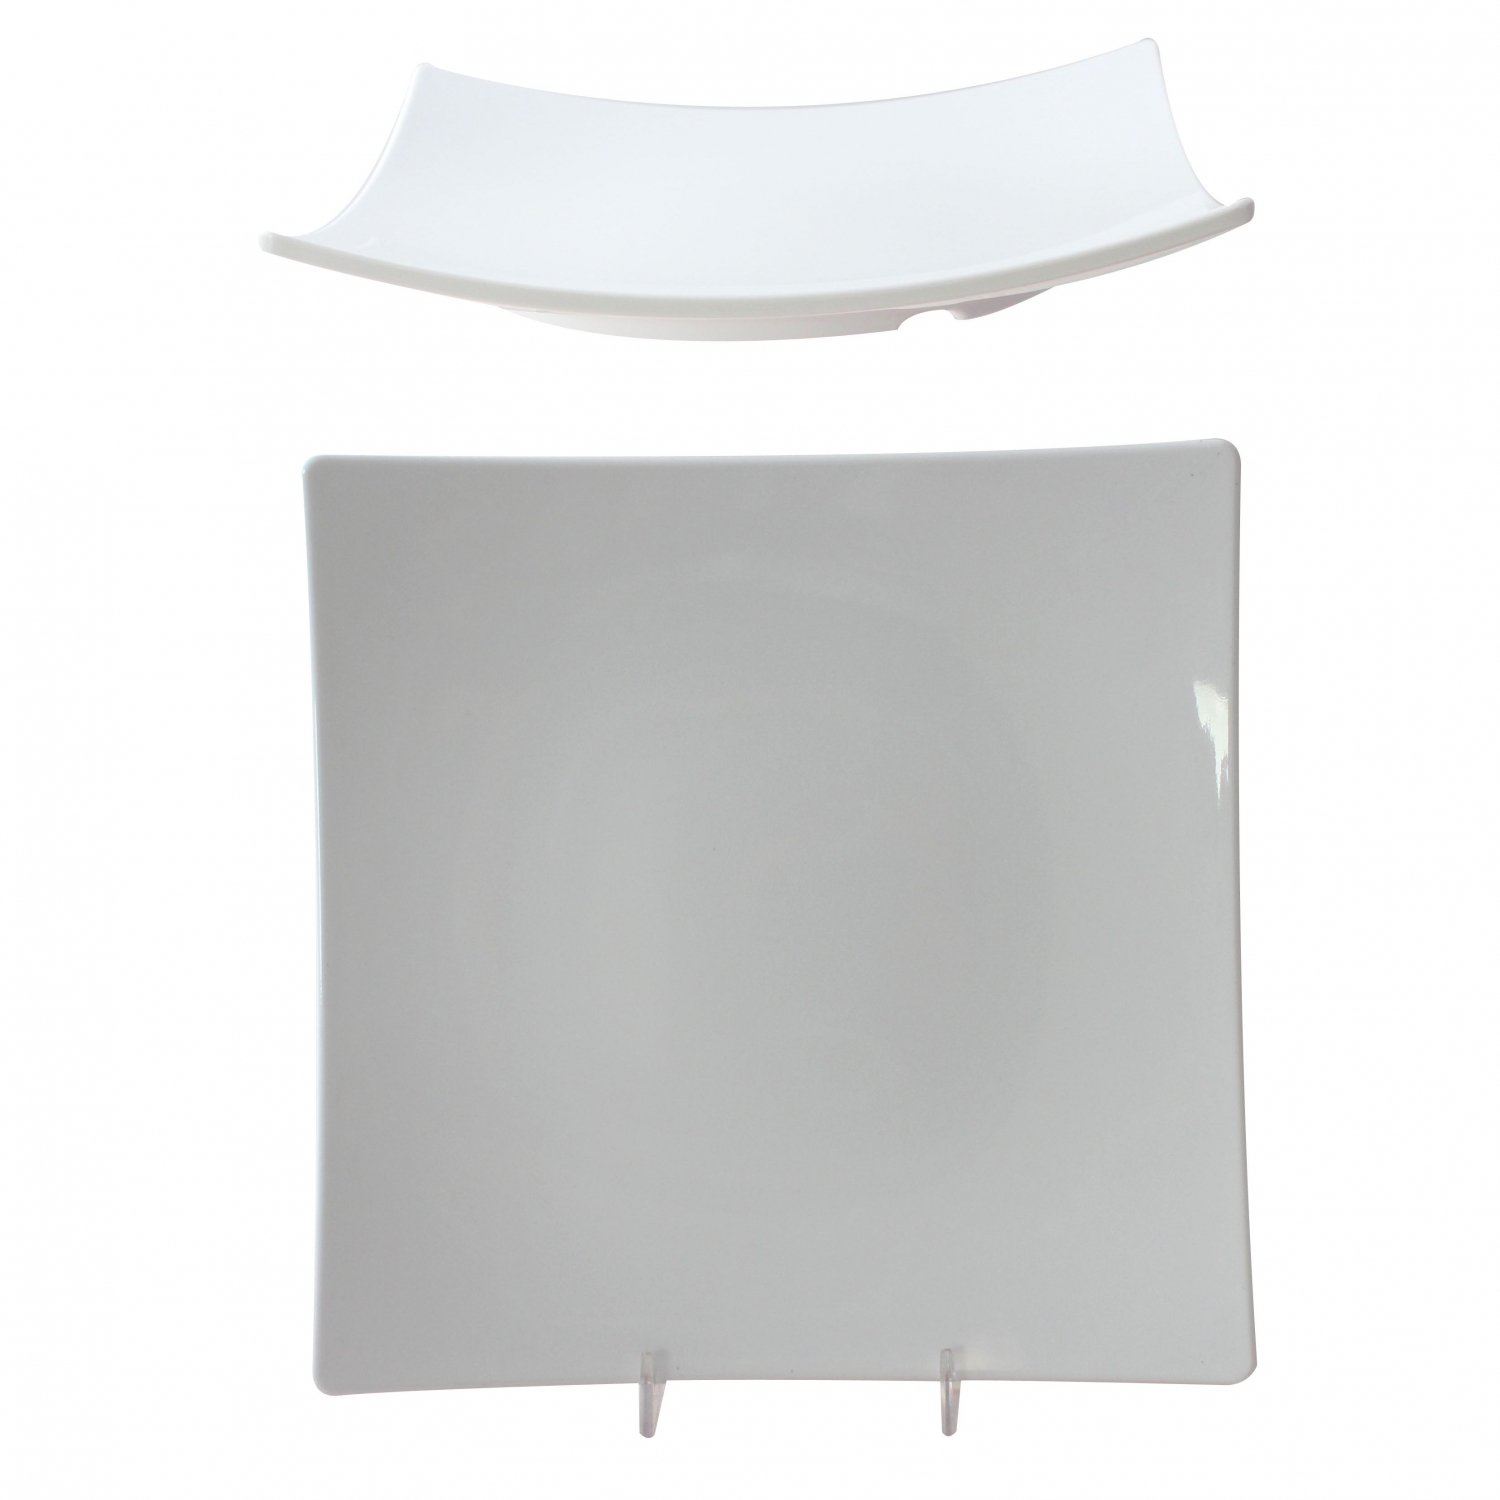 "Thunder Group 24010WT Classic White Series Square Plate 10"" - 1 doz"